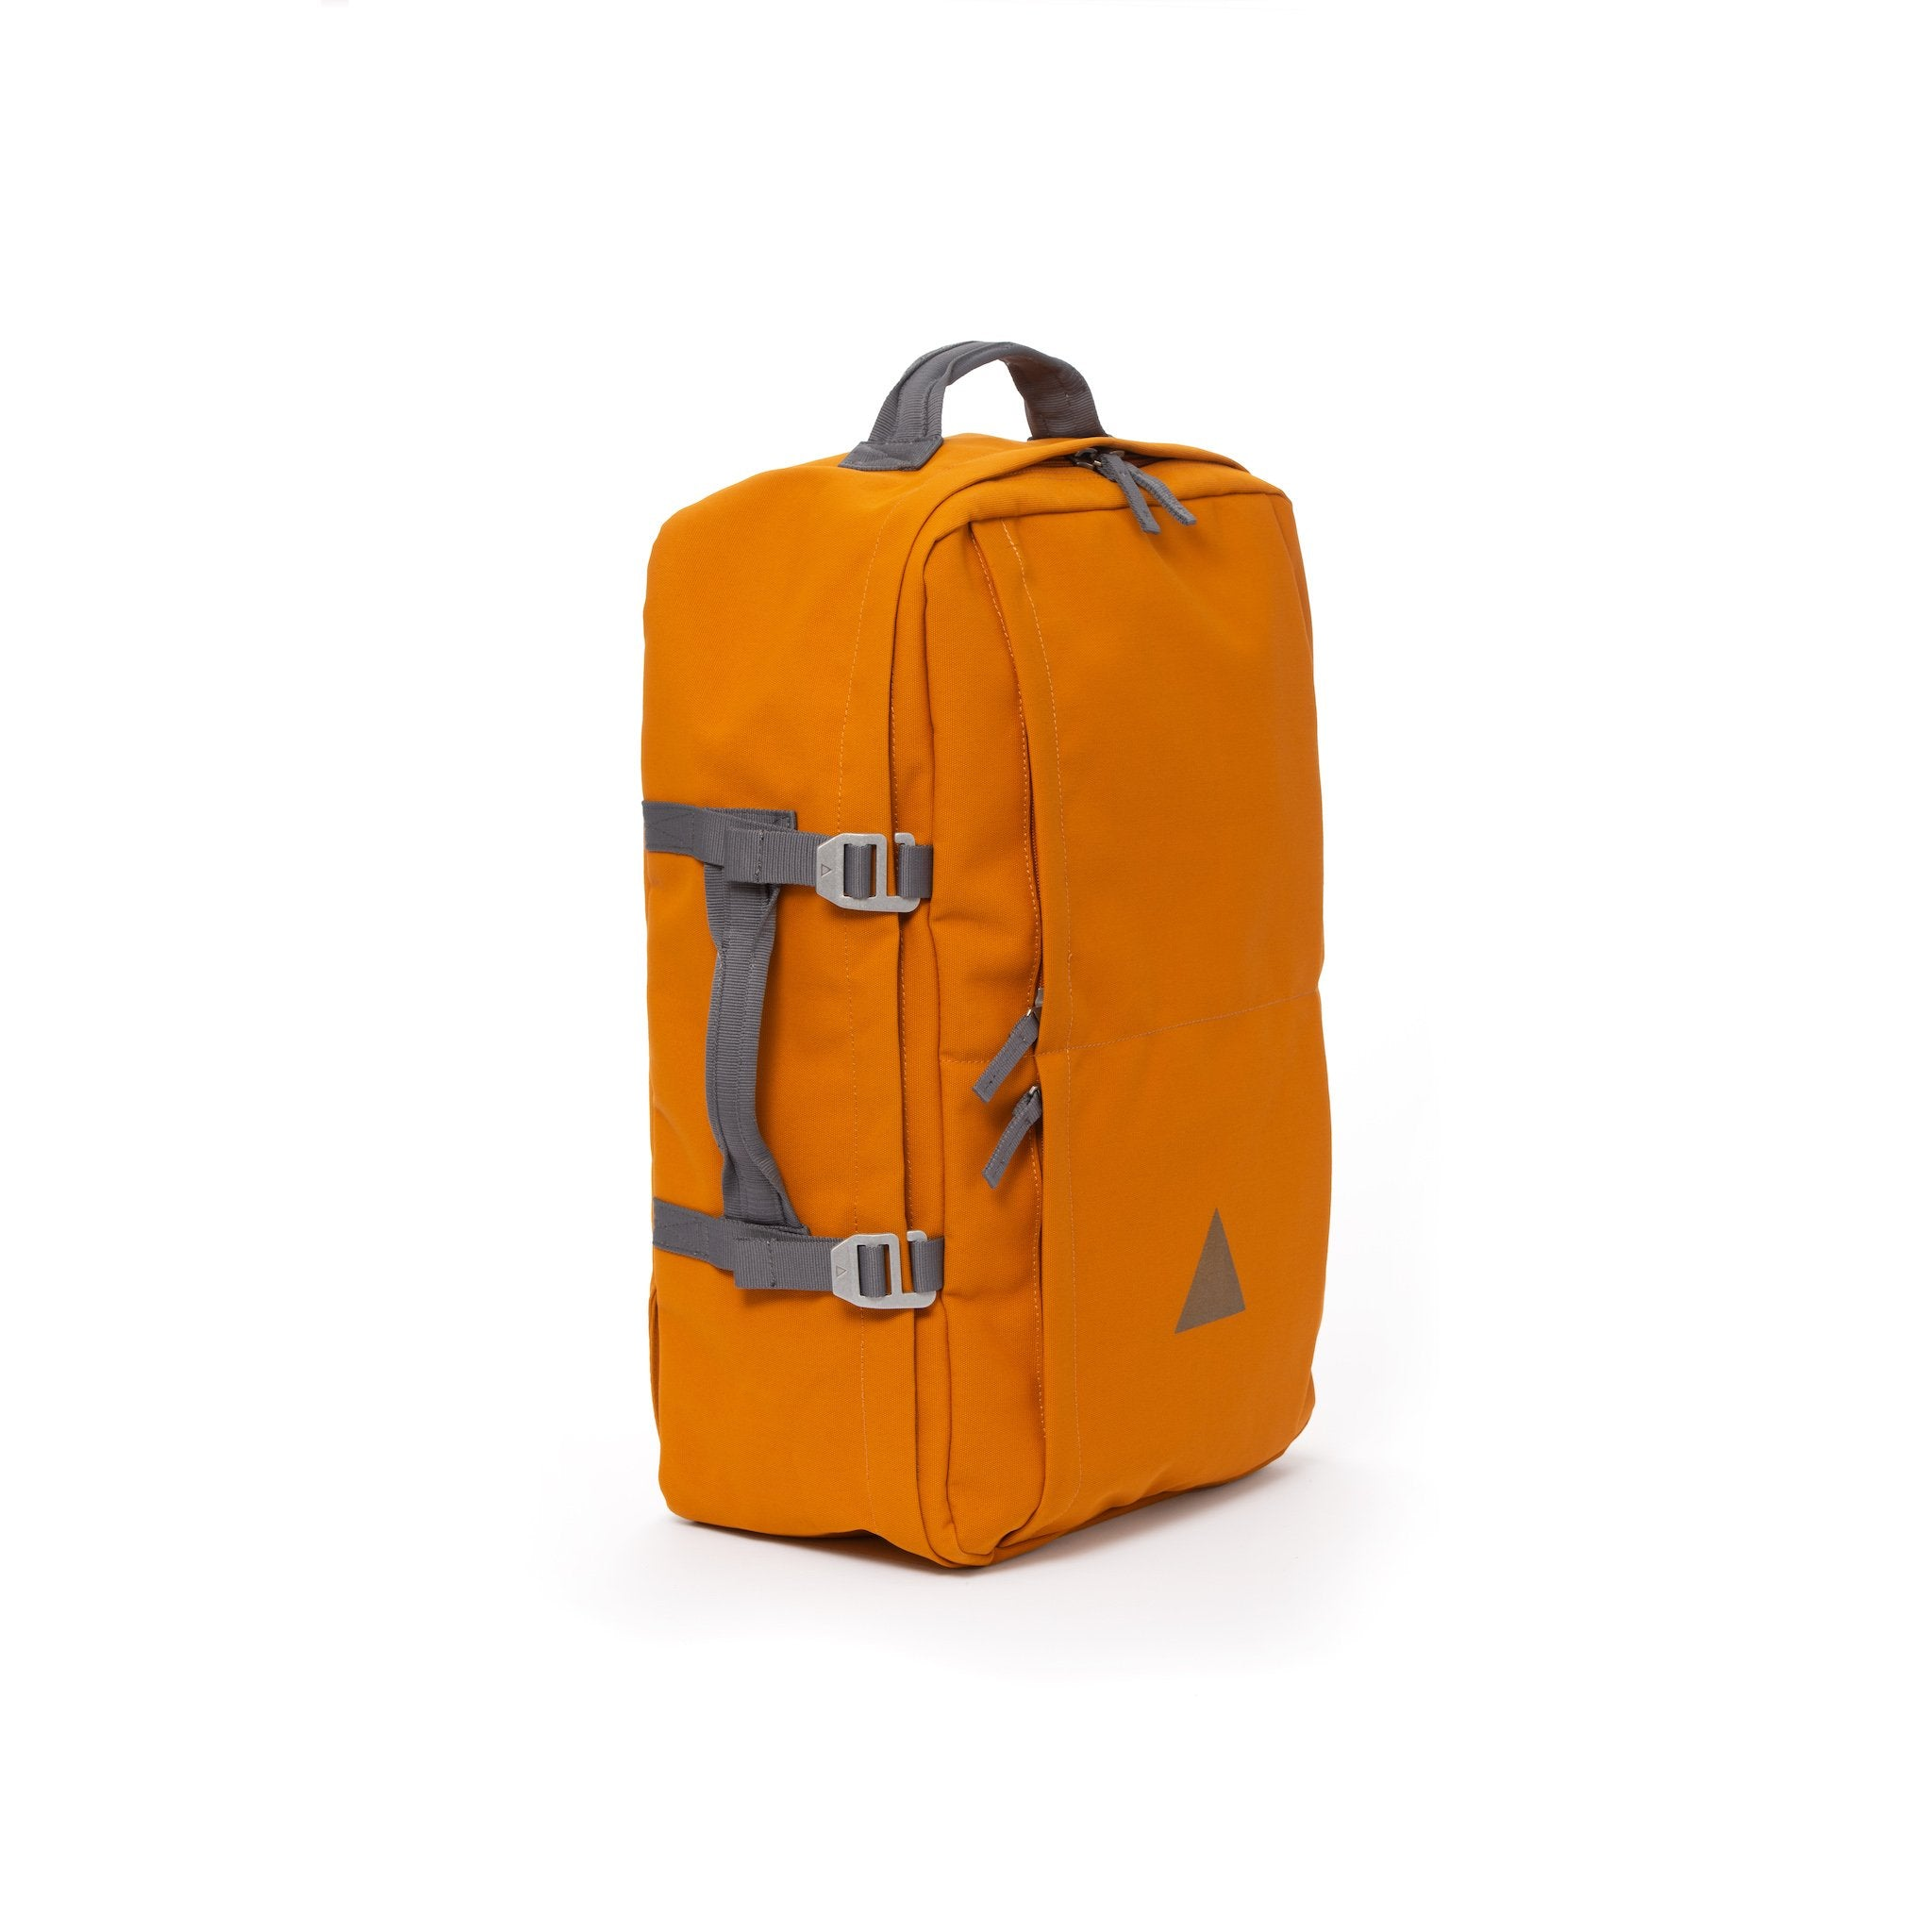 Orange recycled canvas travel backpack with carry handle.